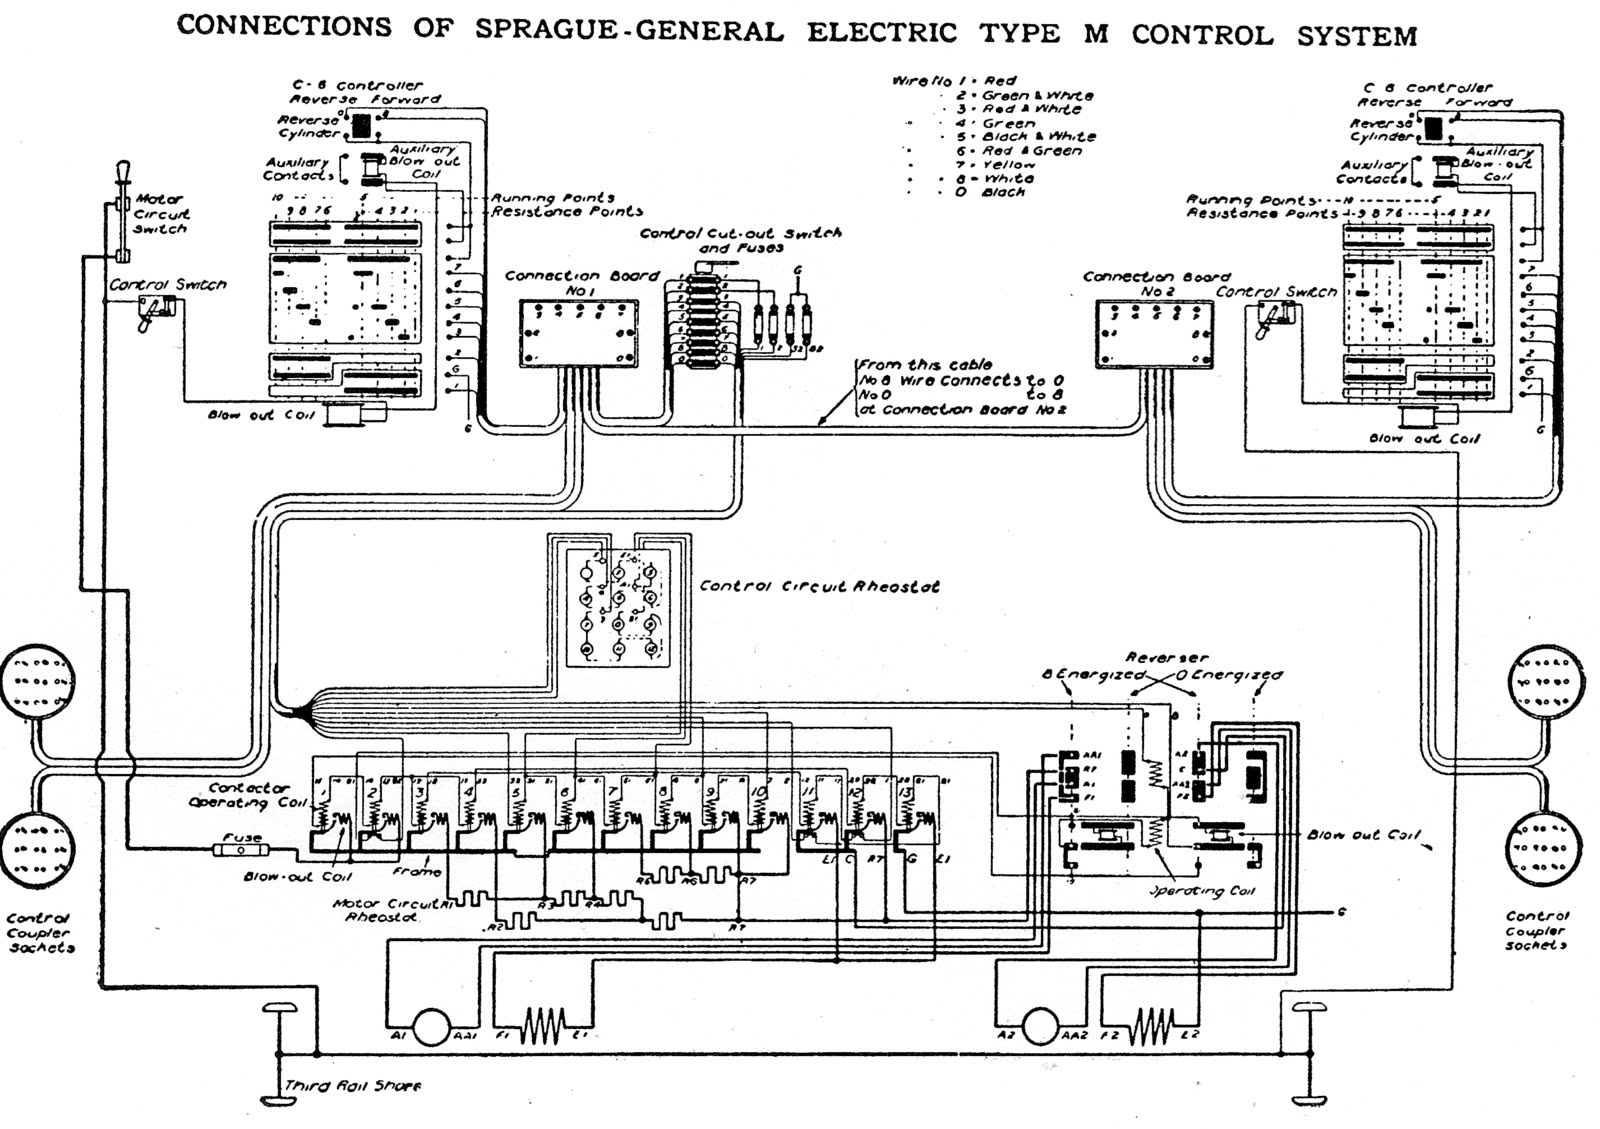 1972 cb350 ignition wiring diagram 1989 accord vacuum